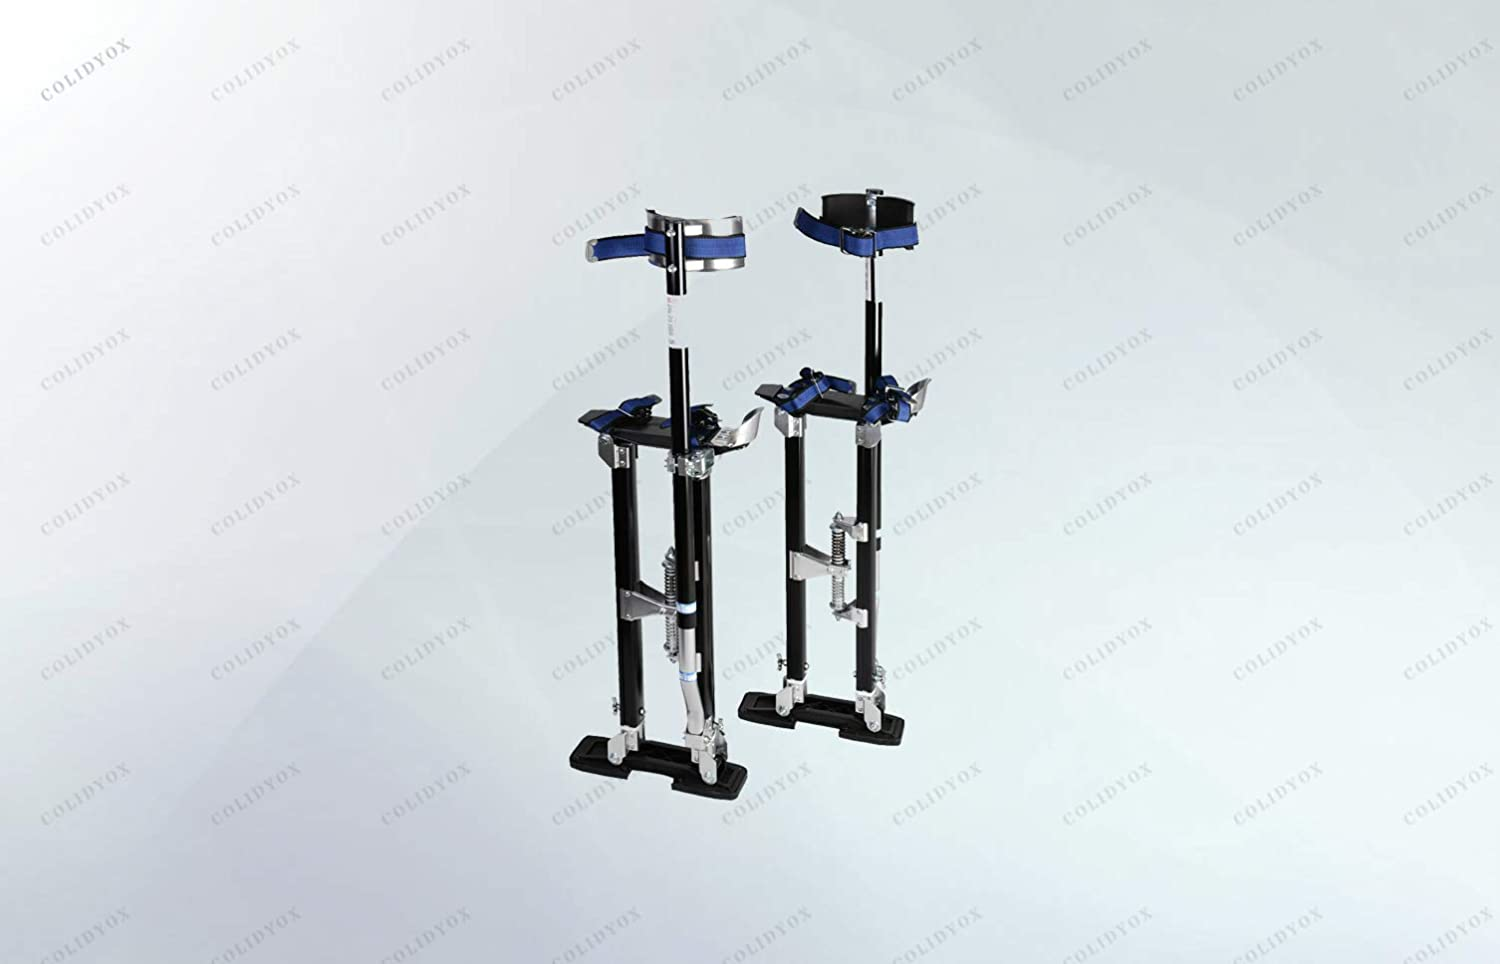 COLIBROX/_Ergonomic stilt,perfect tool to help you save a lot of time,industrial grade aluminum alloy,light-weight and durable,simple adjustment design